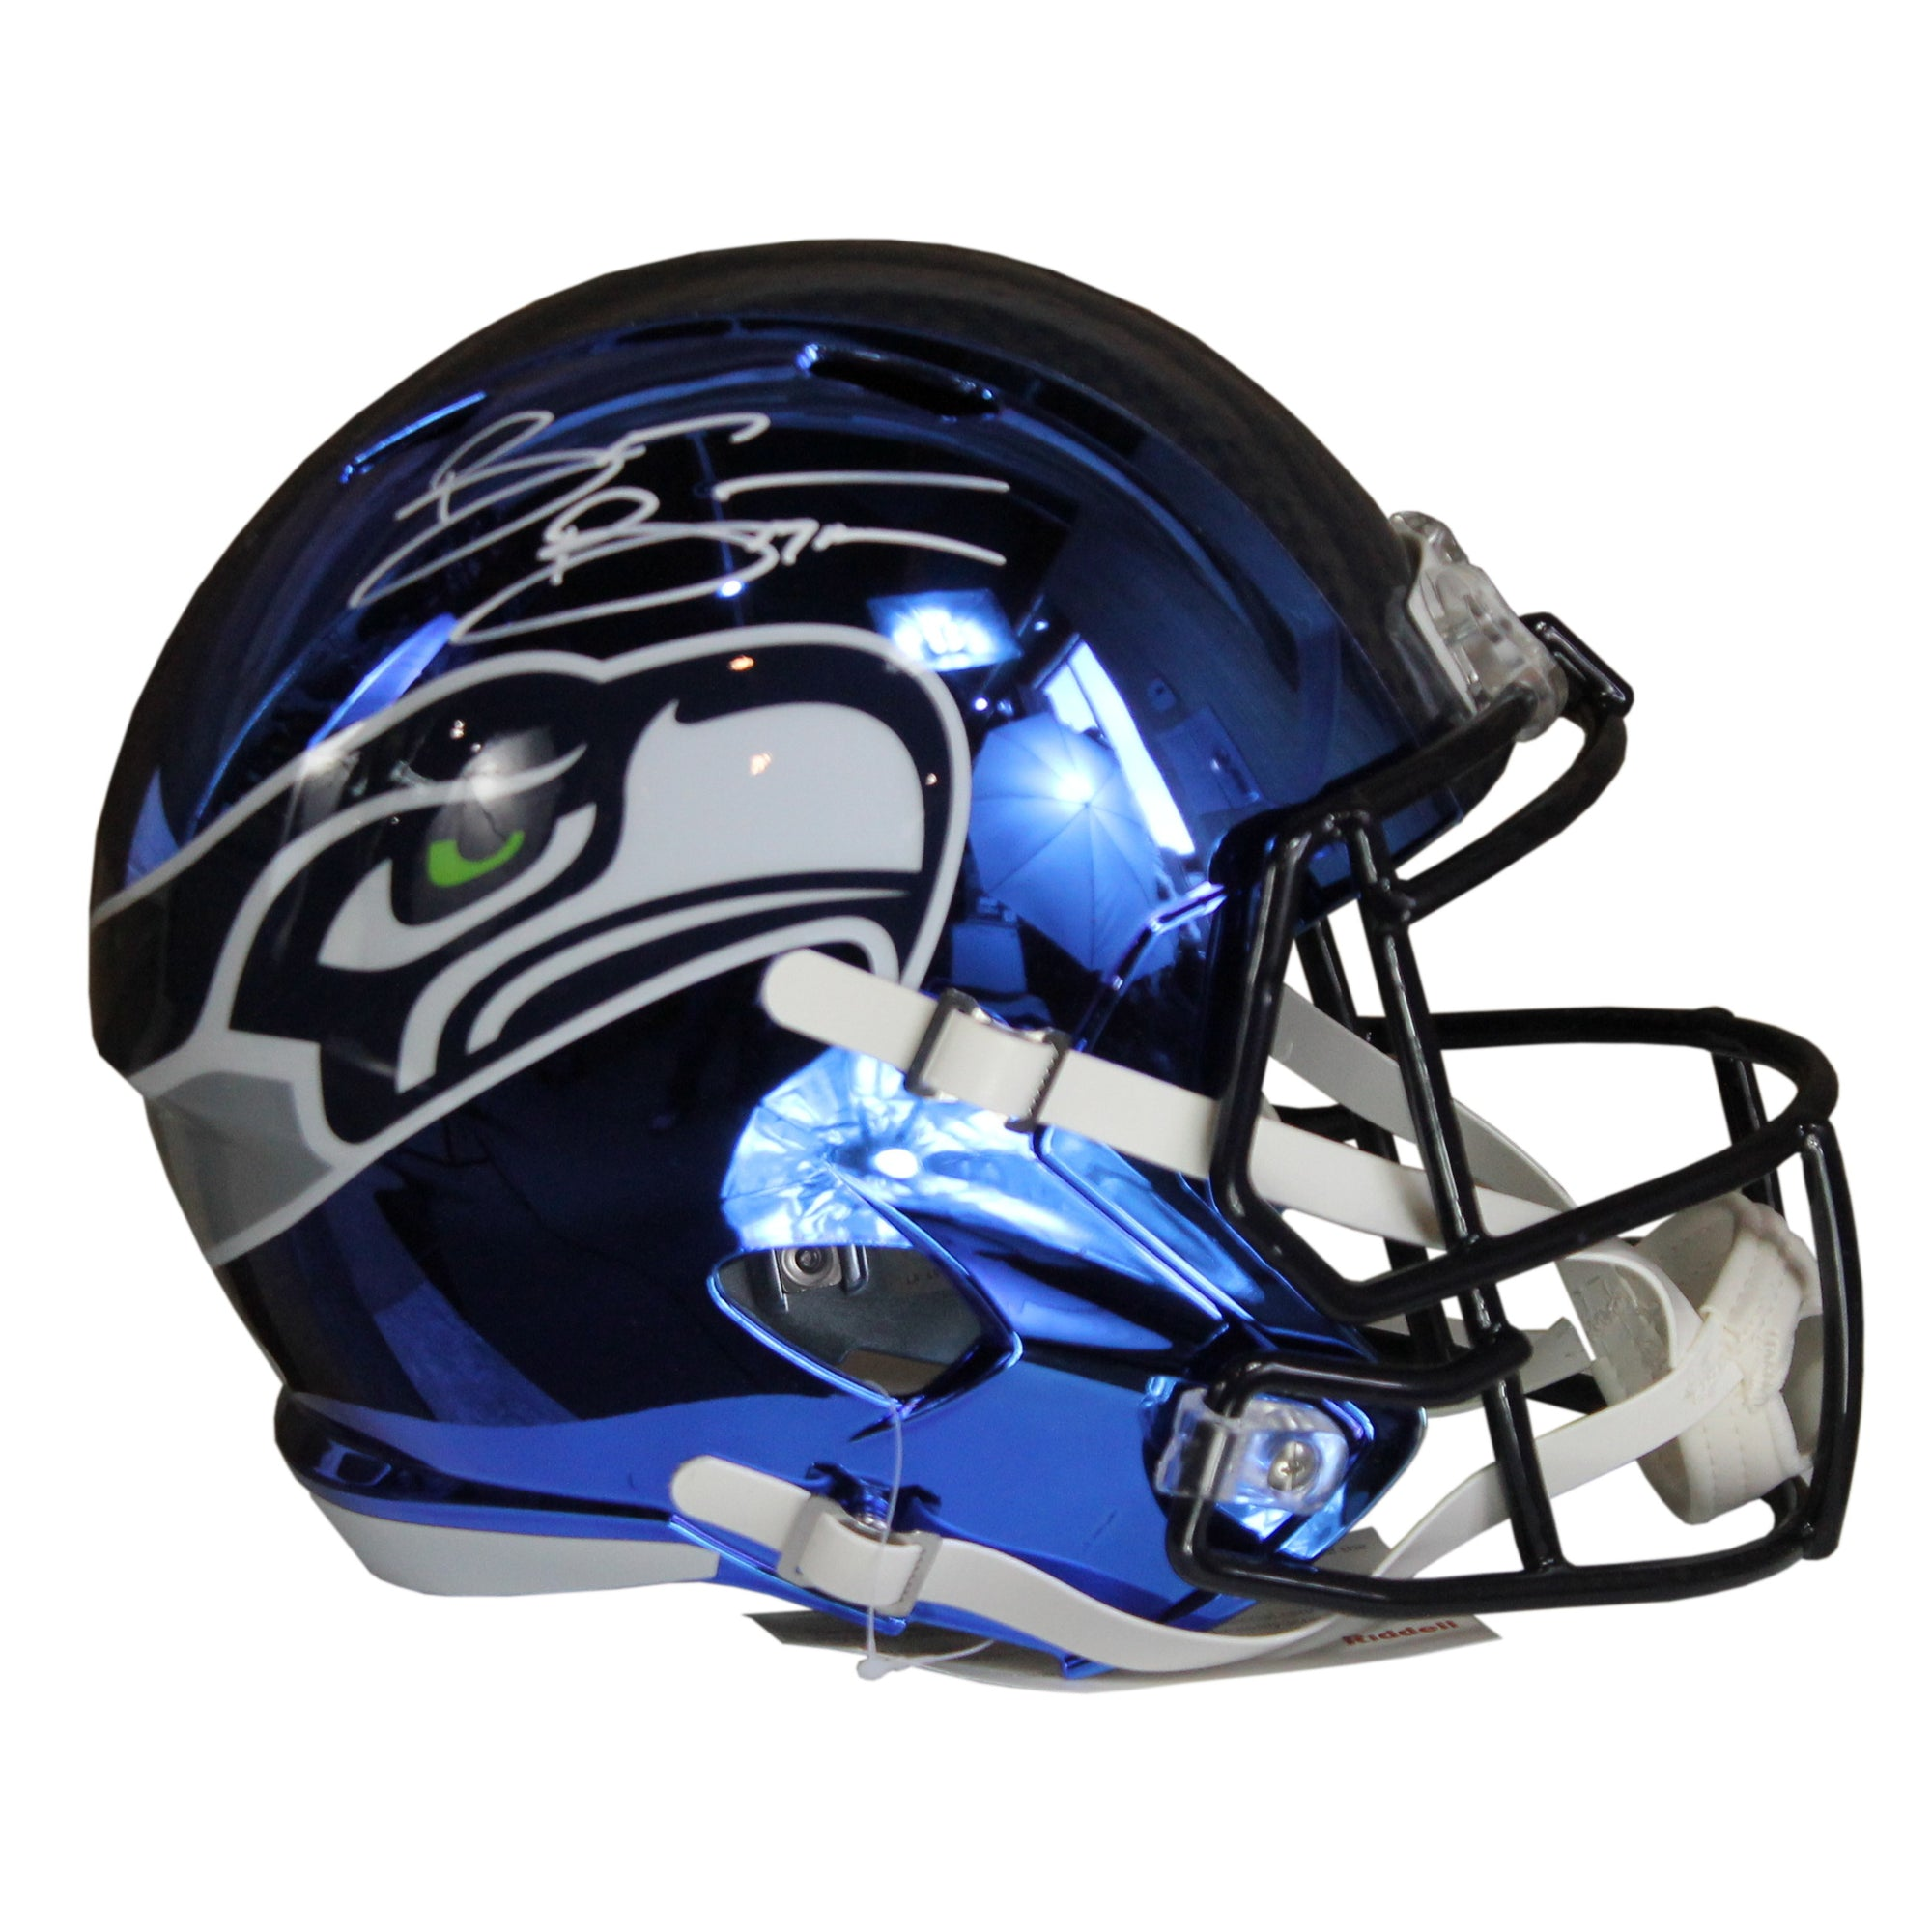 69f8855be2d Brian Bosworth Autographed Seattle Seahawks Blue Chrome Riddell Speed -  Ultimate Autographs